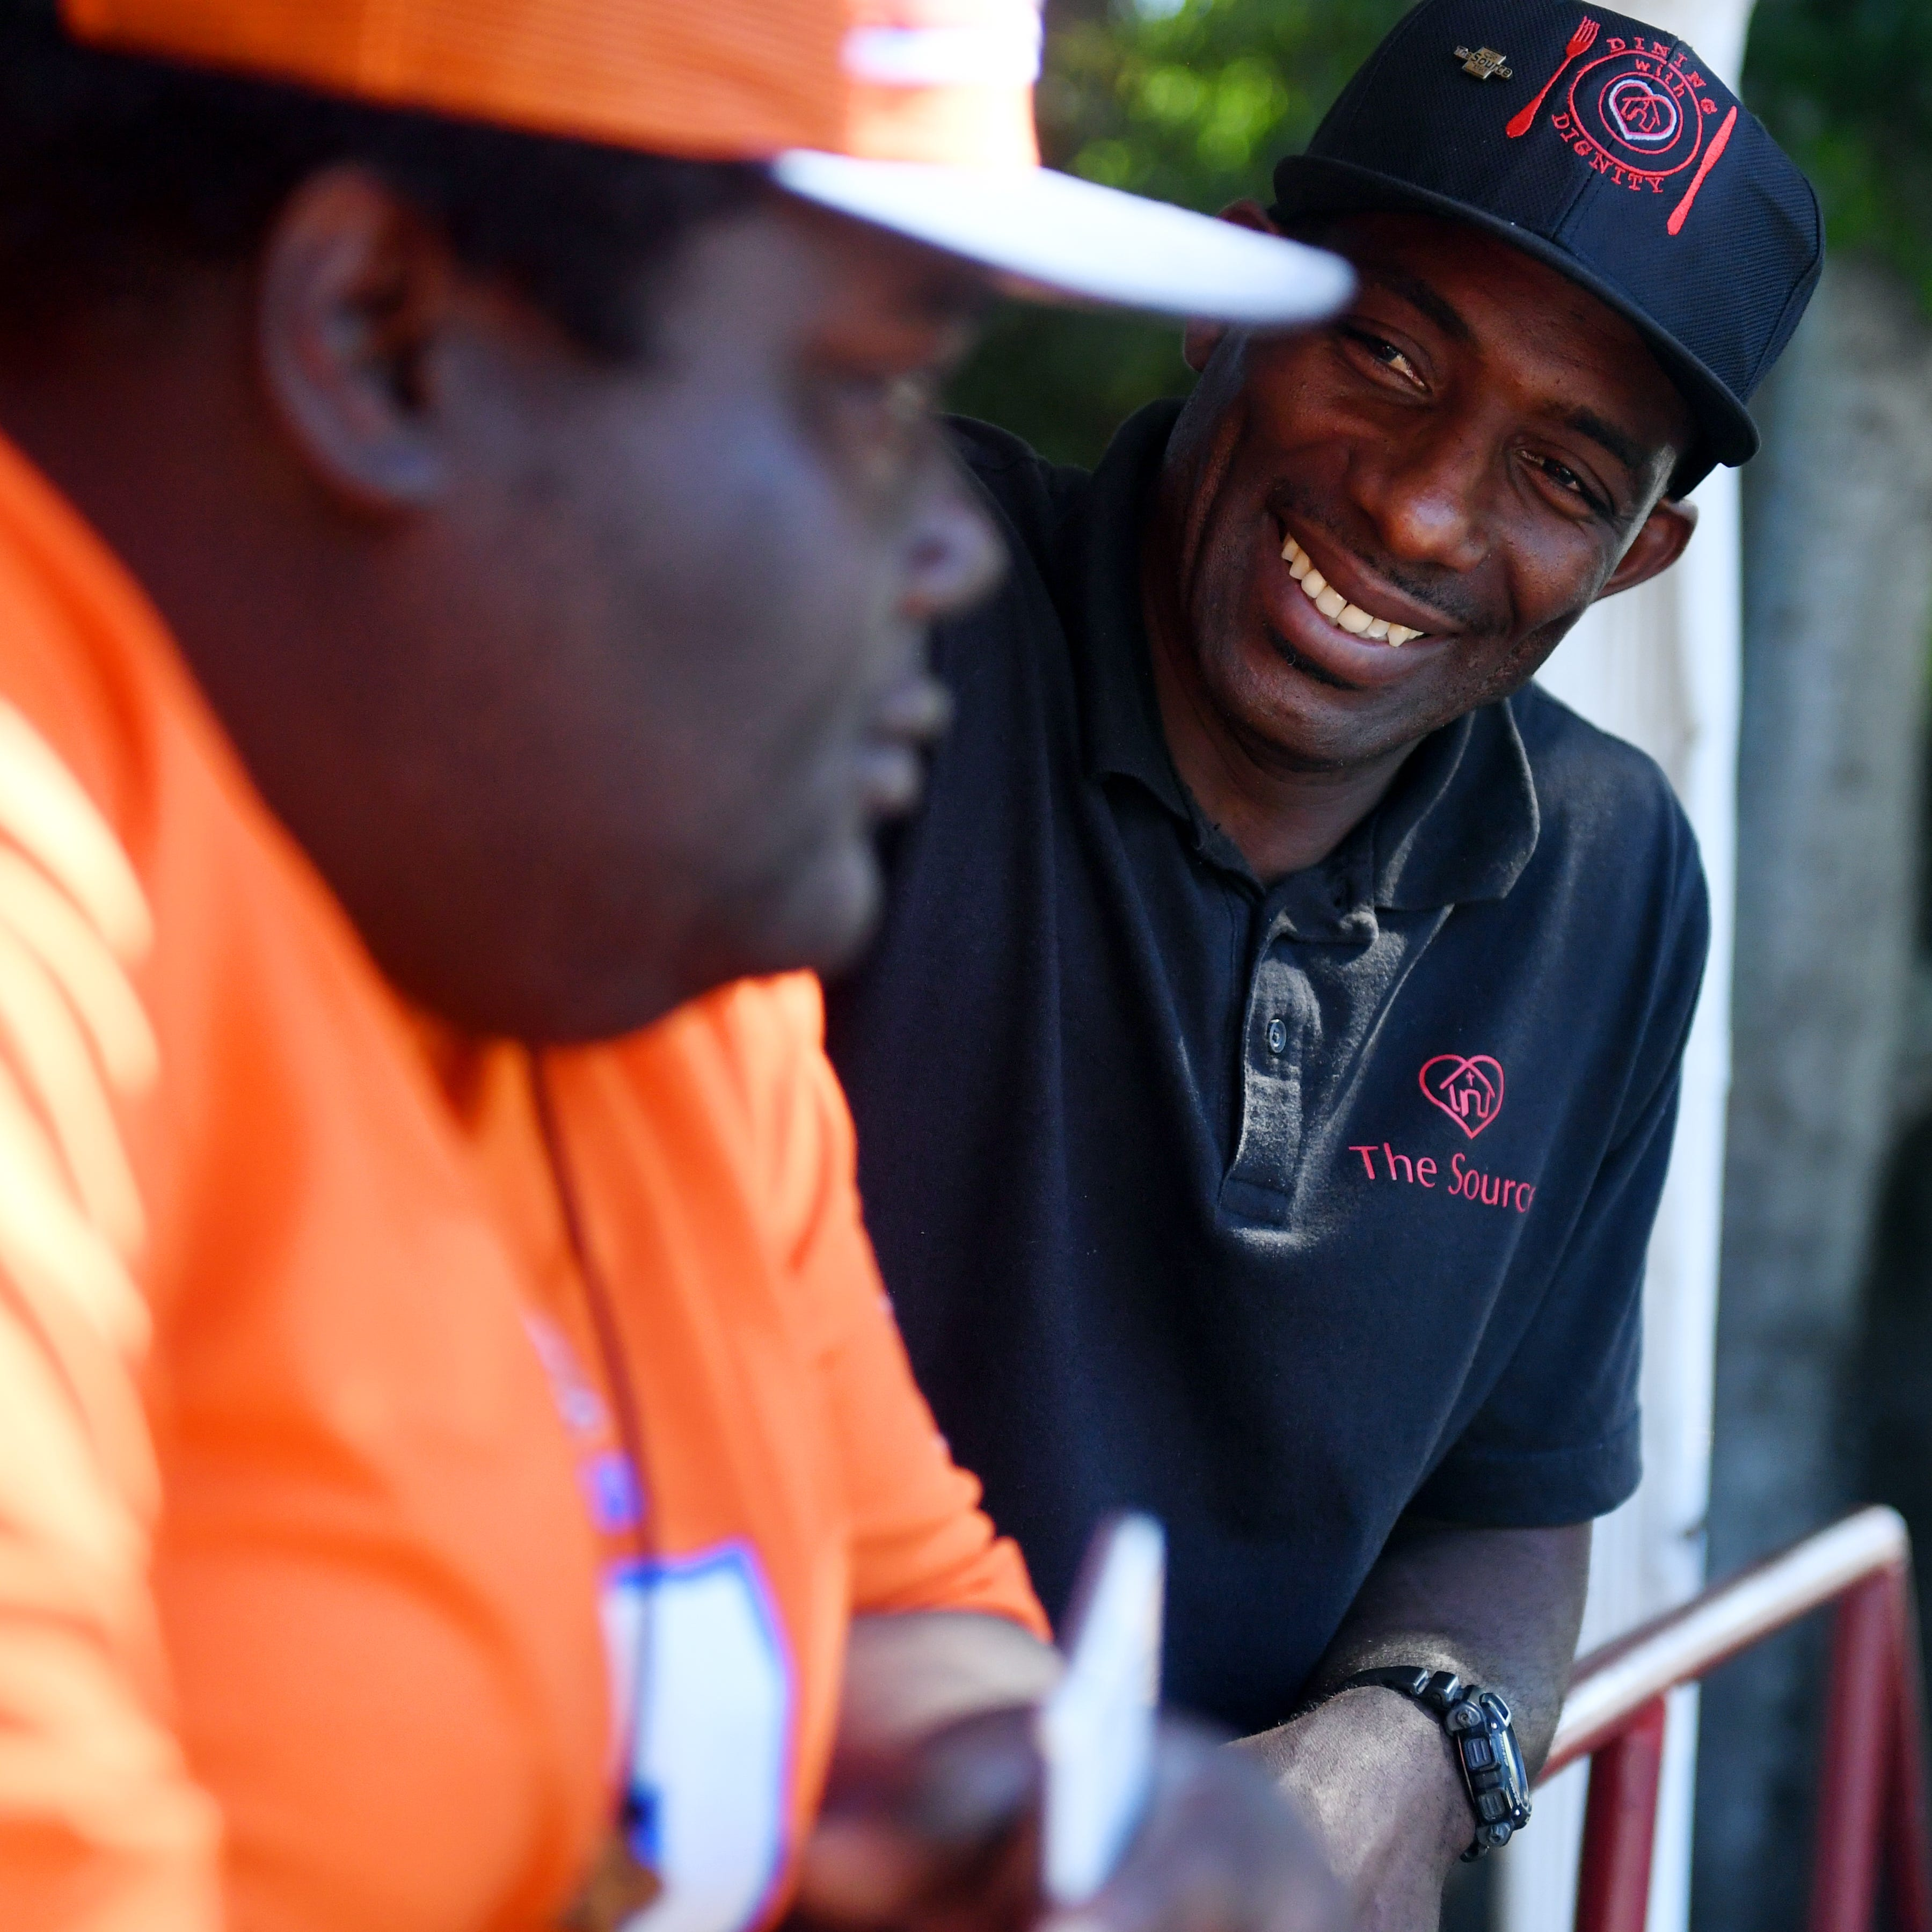 Ex-NFL, Vero Beach football player rebounds from drug addiction, homelessness; helps others